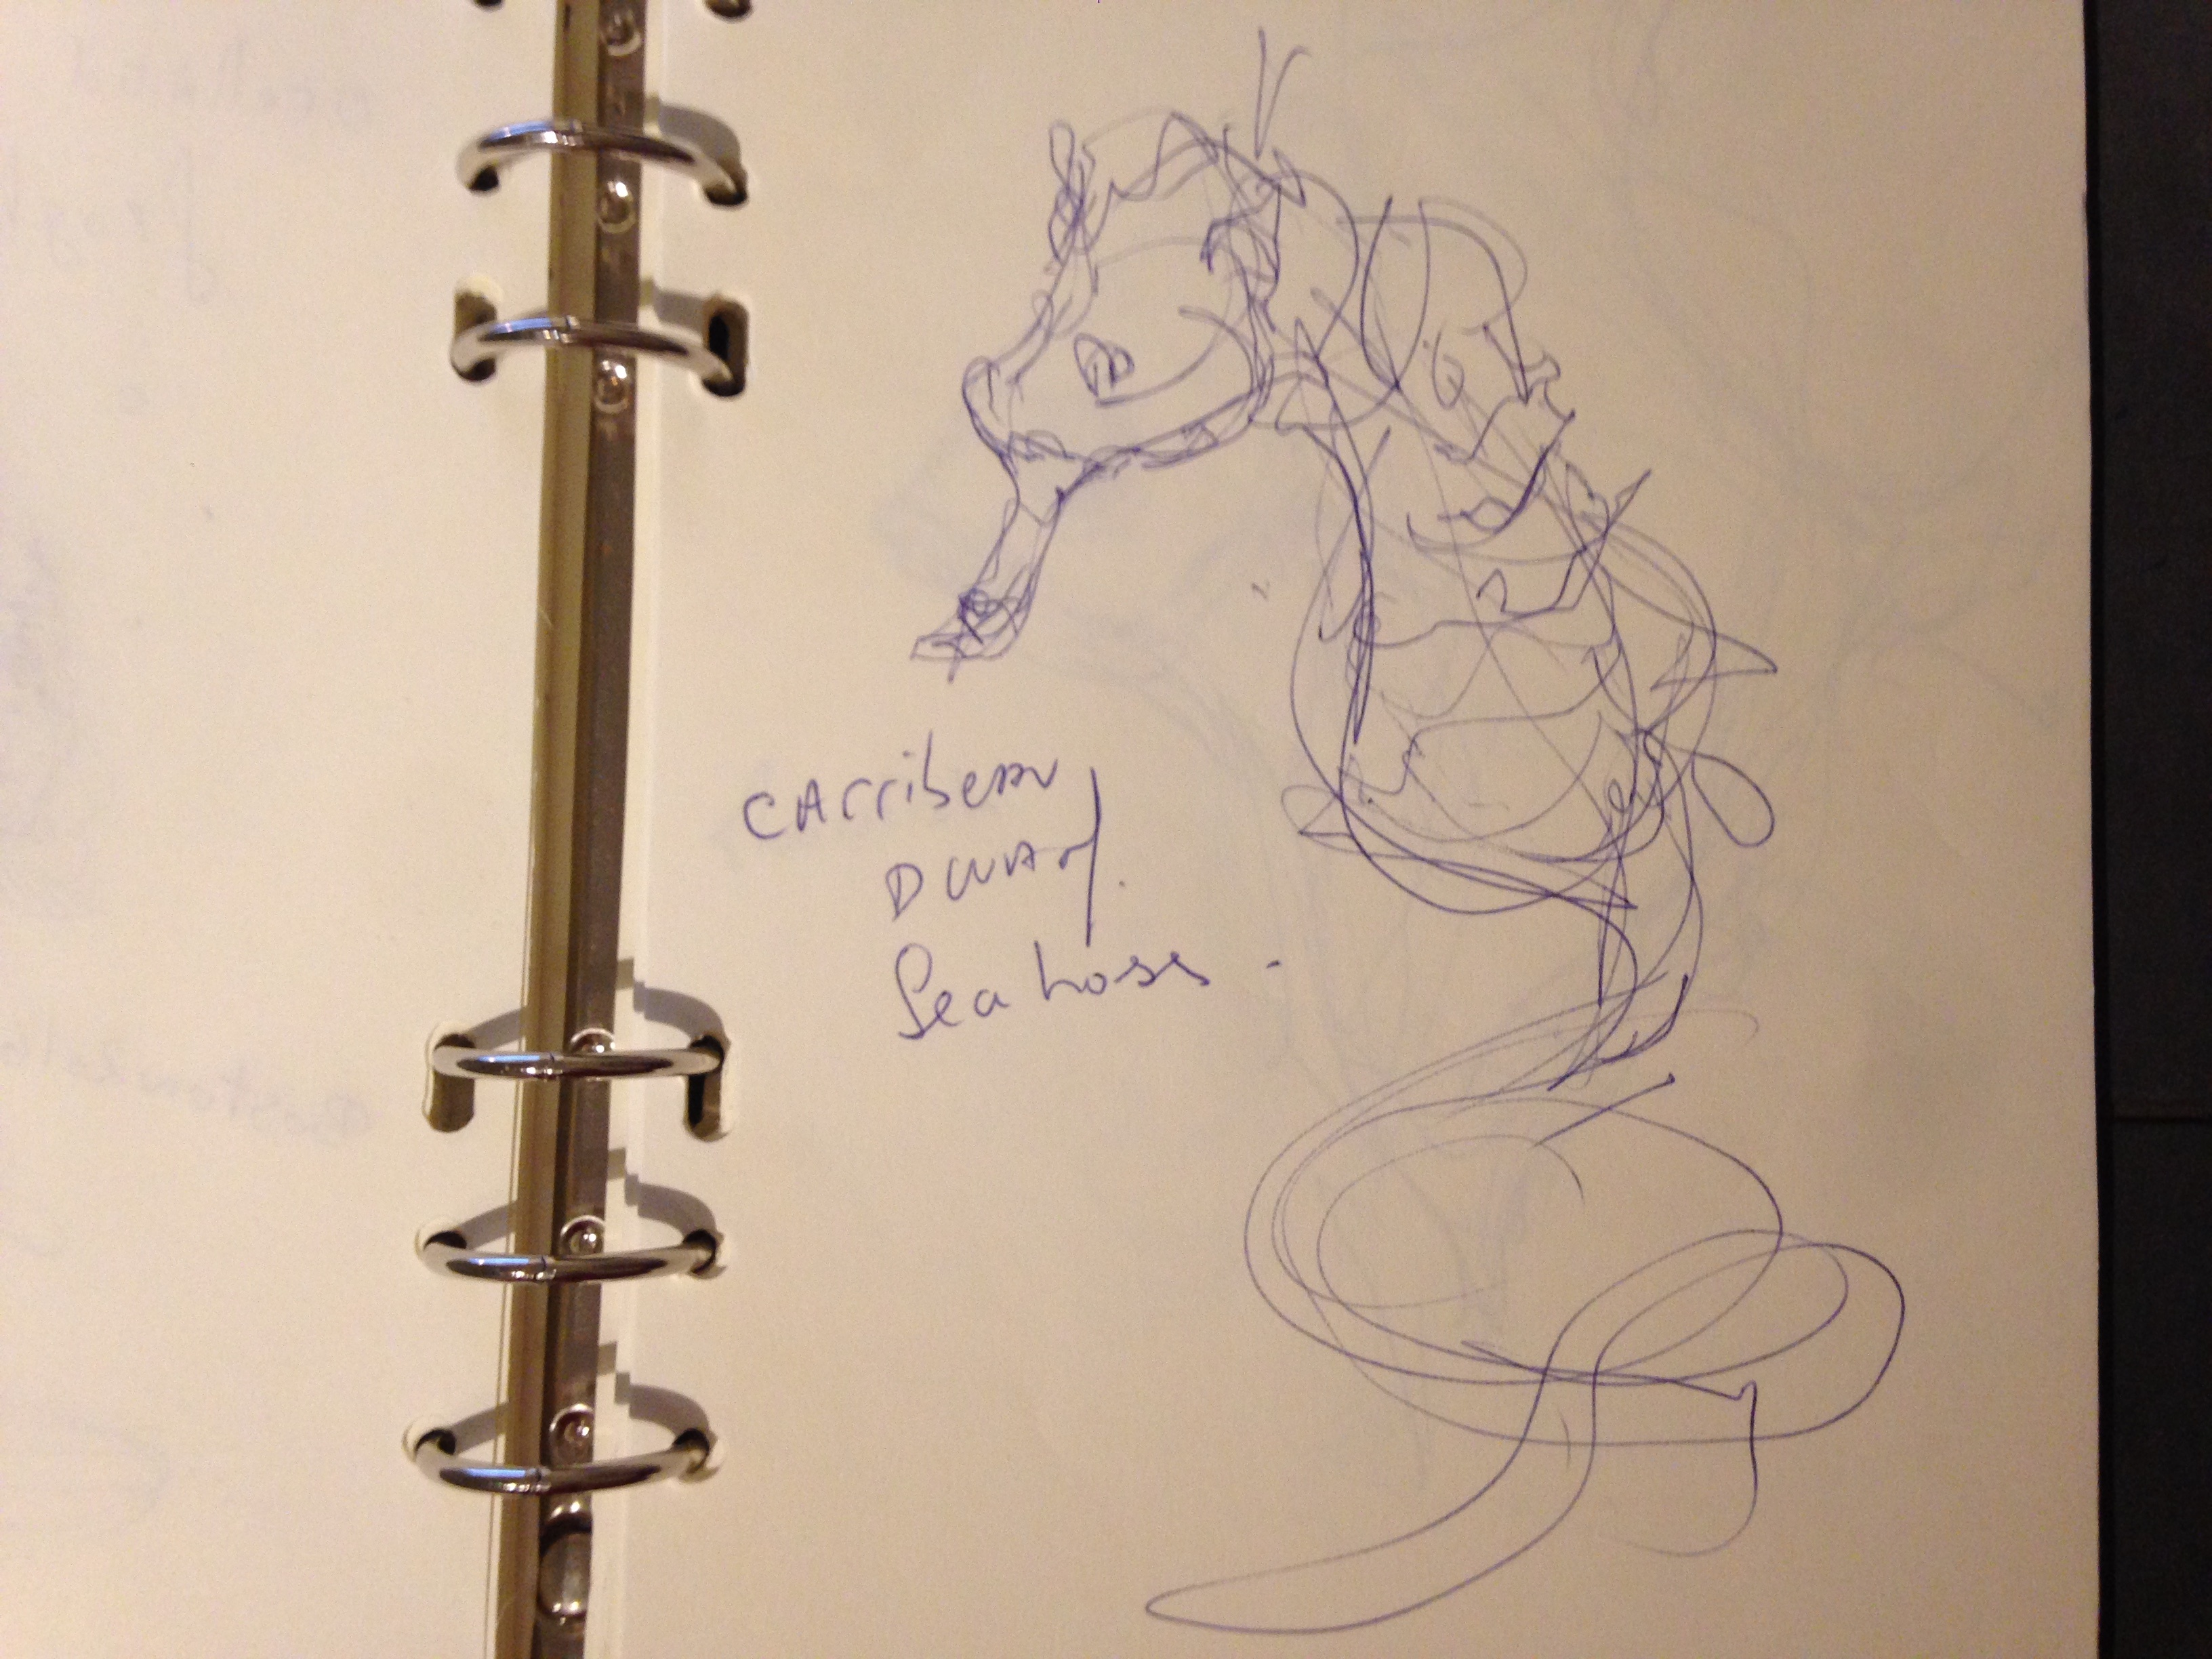 the design sketchbook sketch boston acquarium fish drawing ball point pen blue bic carribean dwarf seahorse